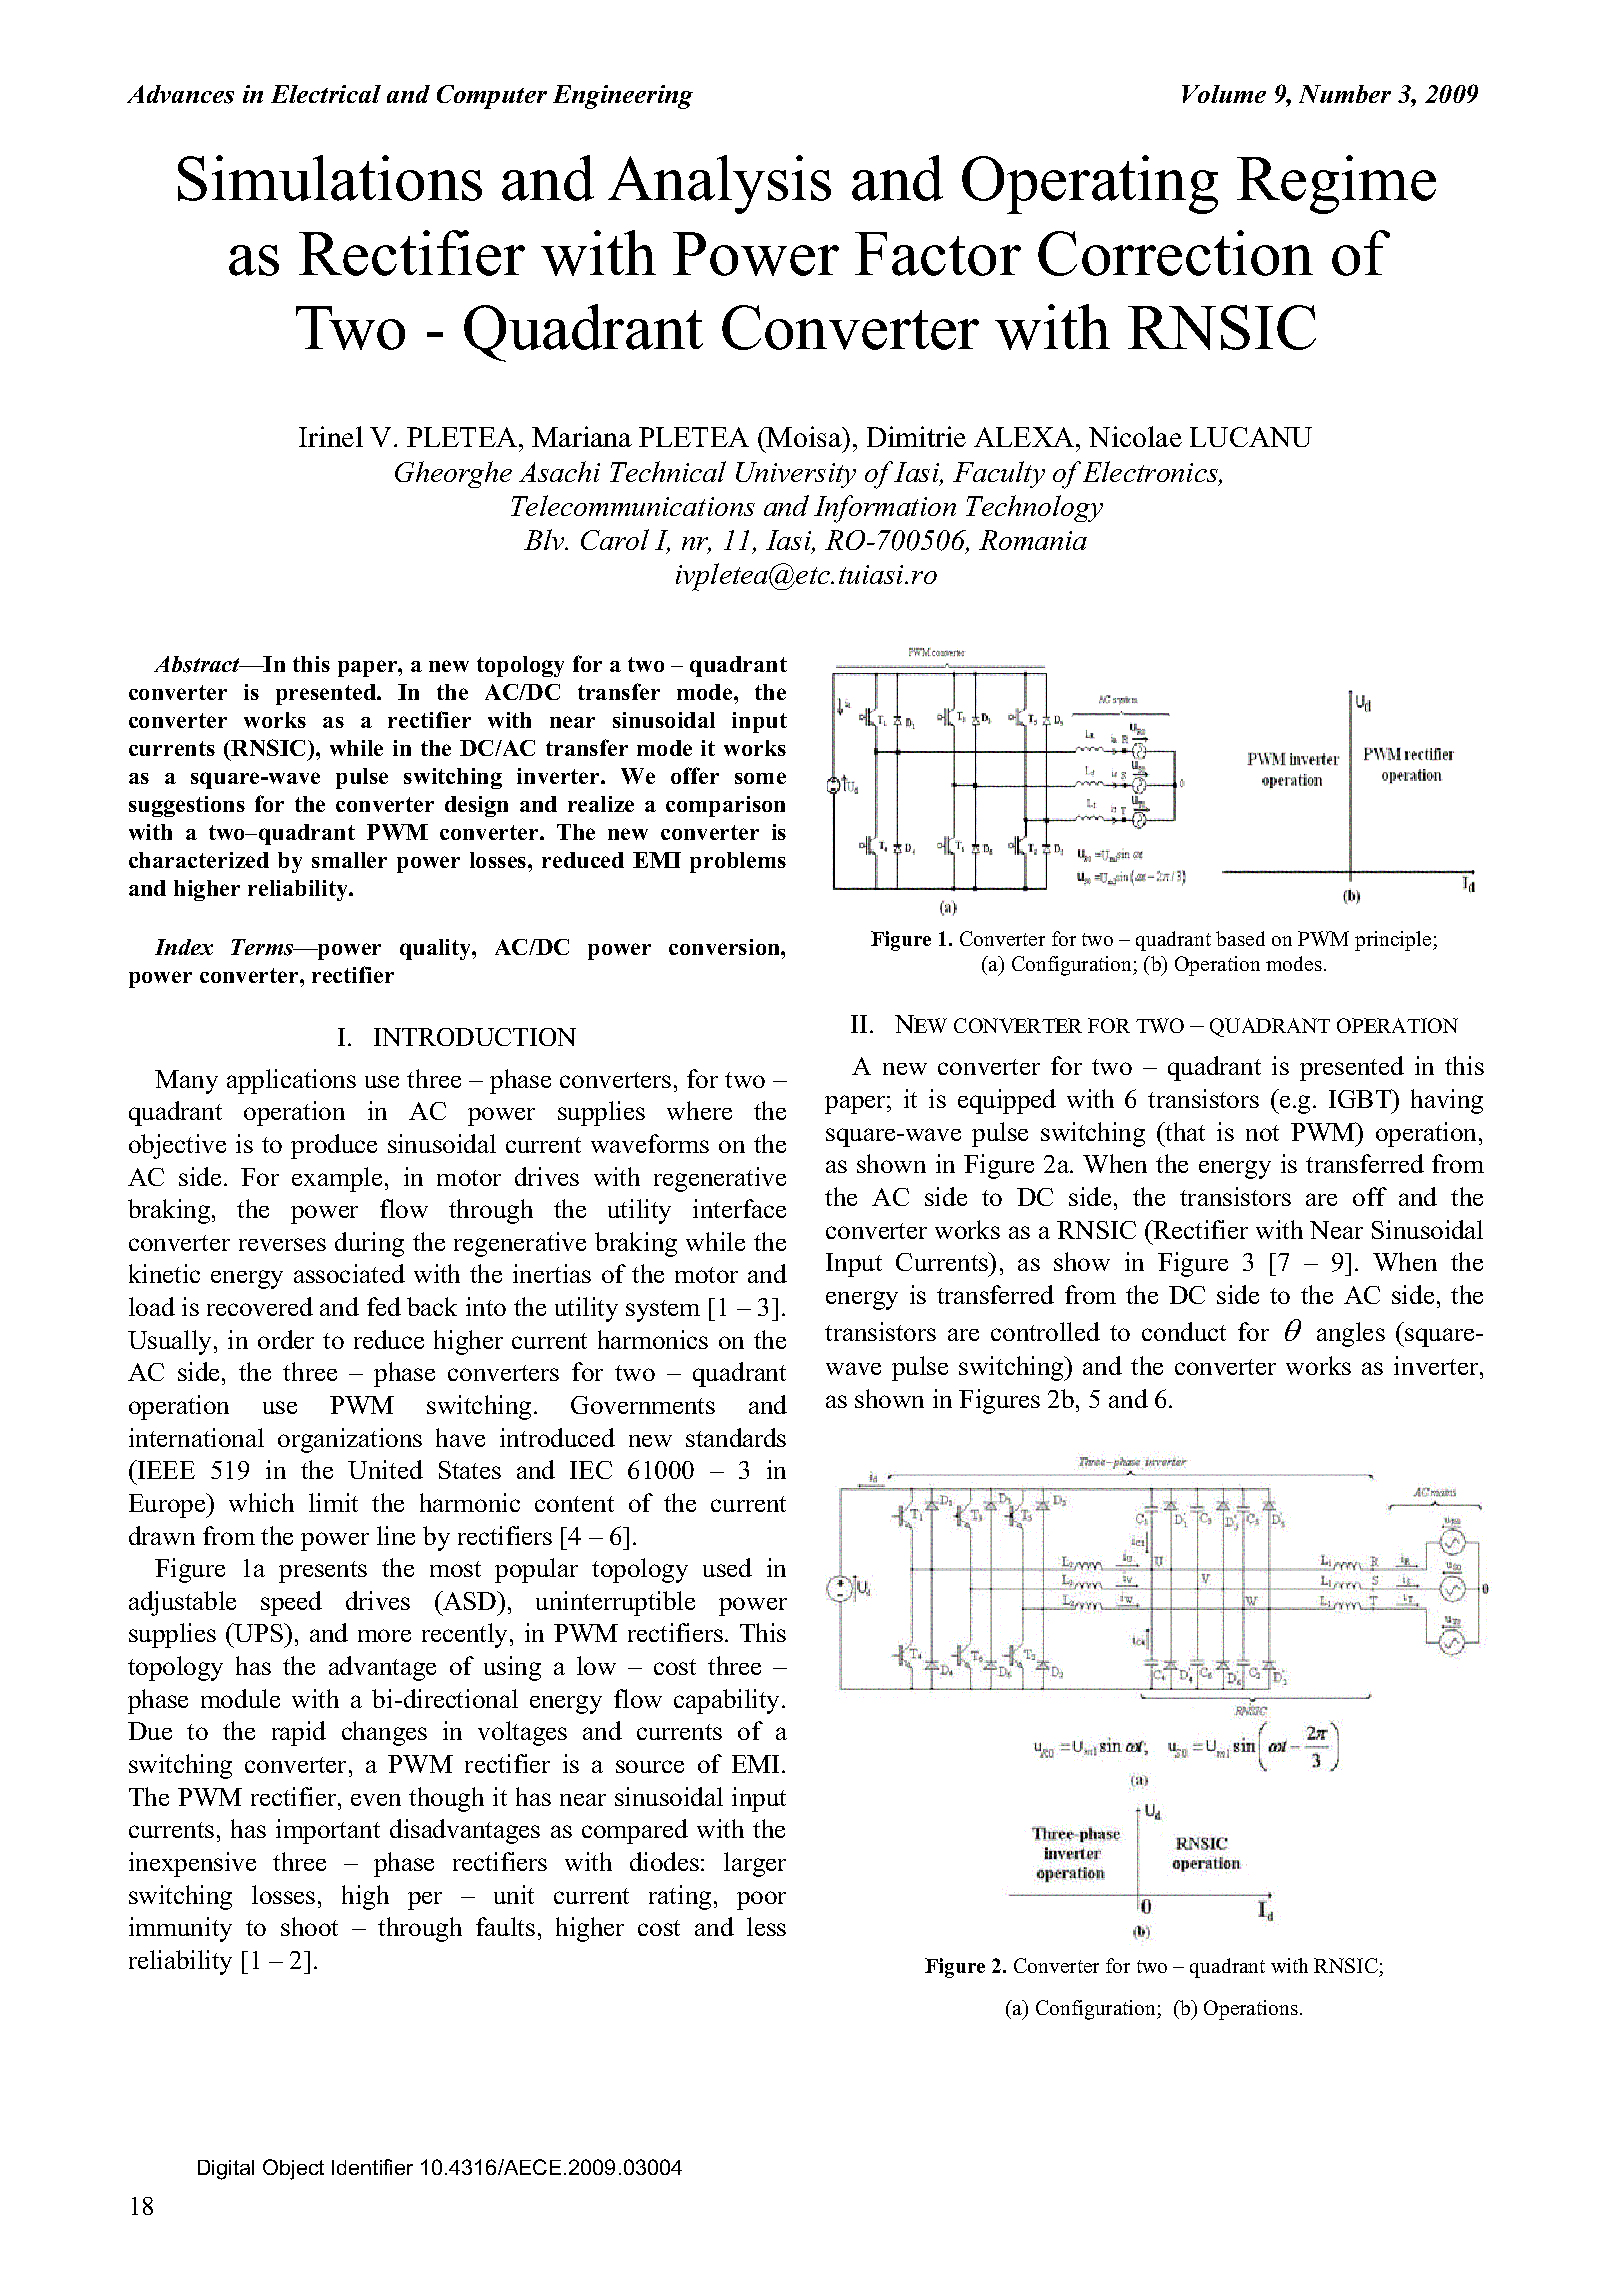 PDF Quickview for paper with DOI:10.4316/AECE.2009.03004